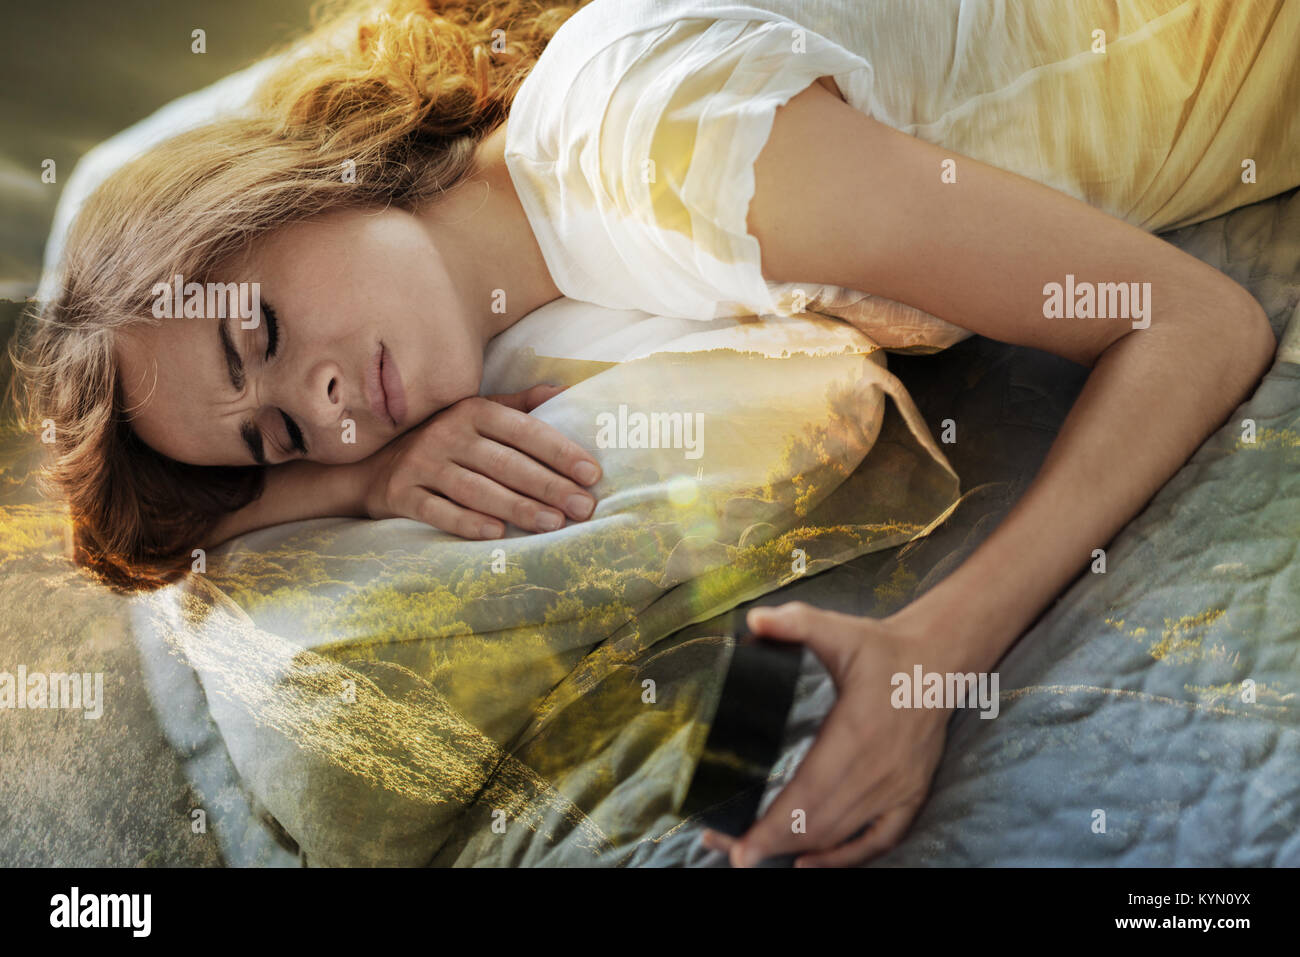 Tired girl sleeping on her bed - Stock Image